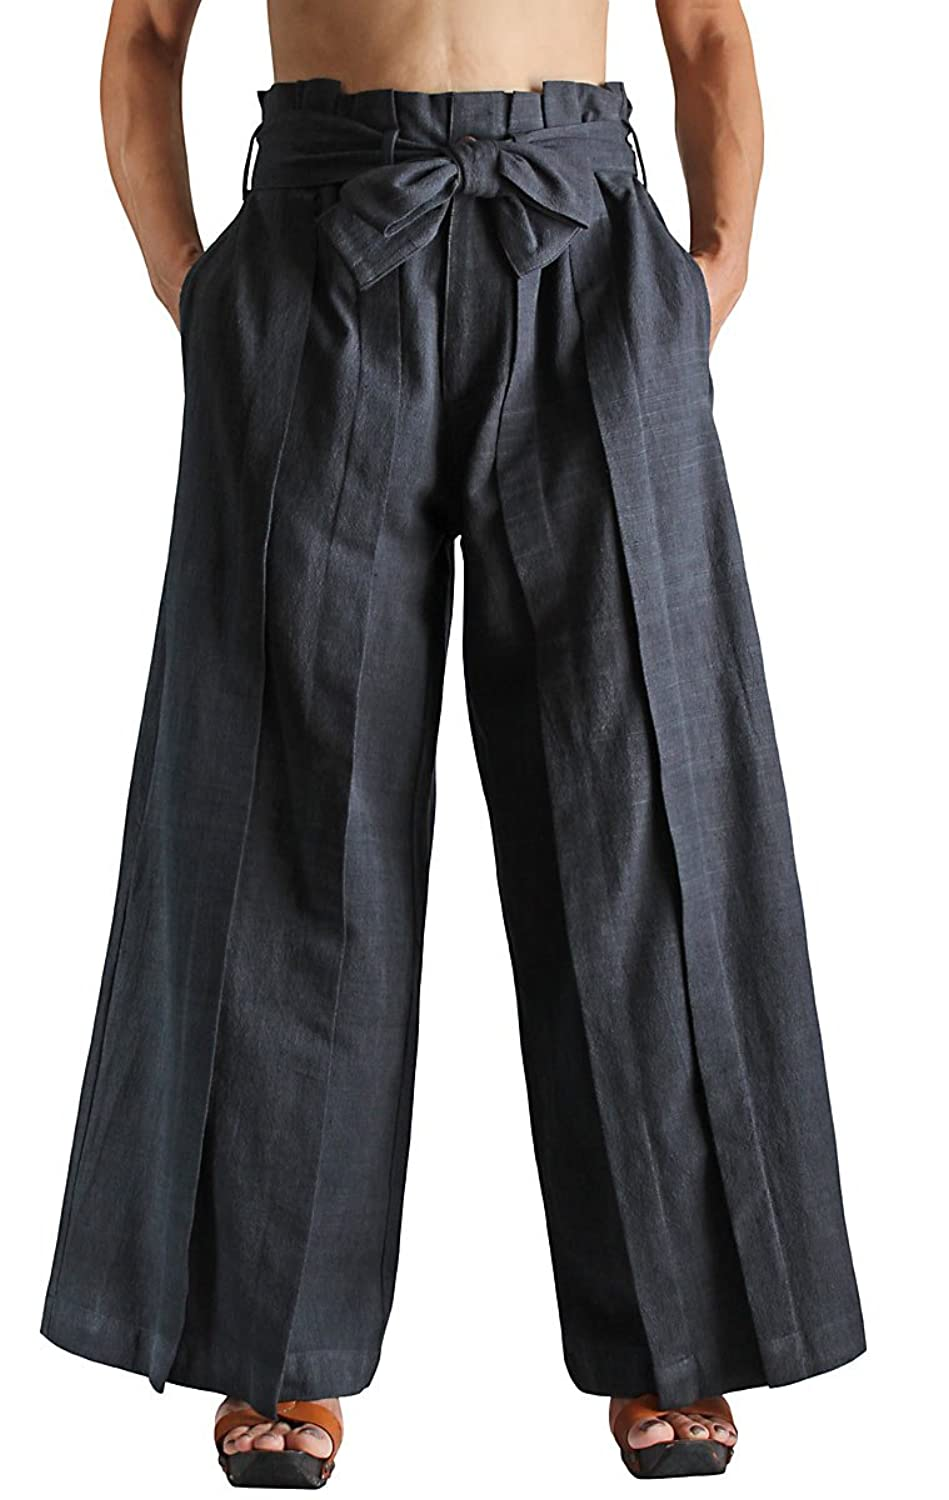 Sawan Mens ChomThong Hand Woven Cotton Hakama Style Pants At Amazon Clothing Store